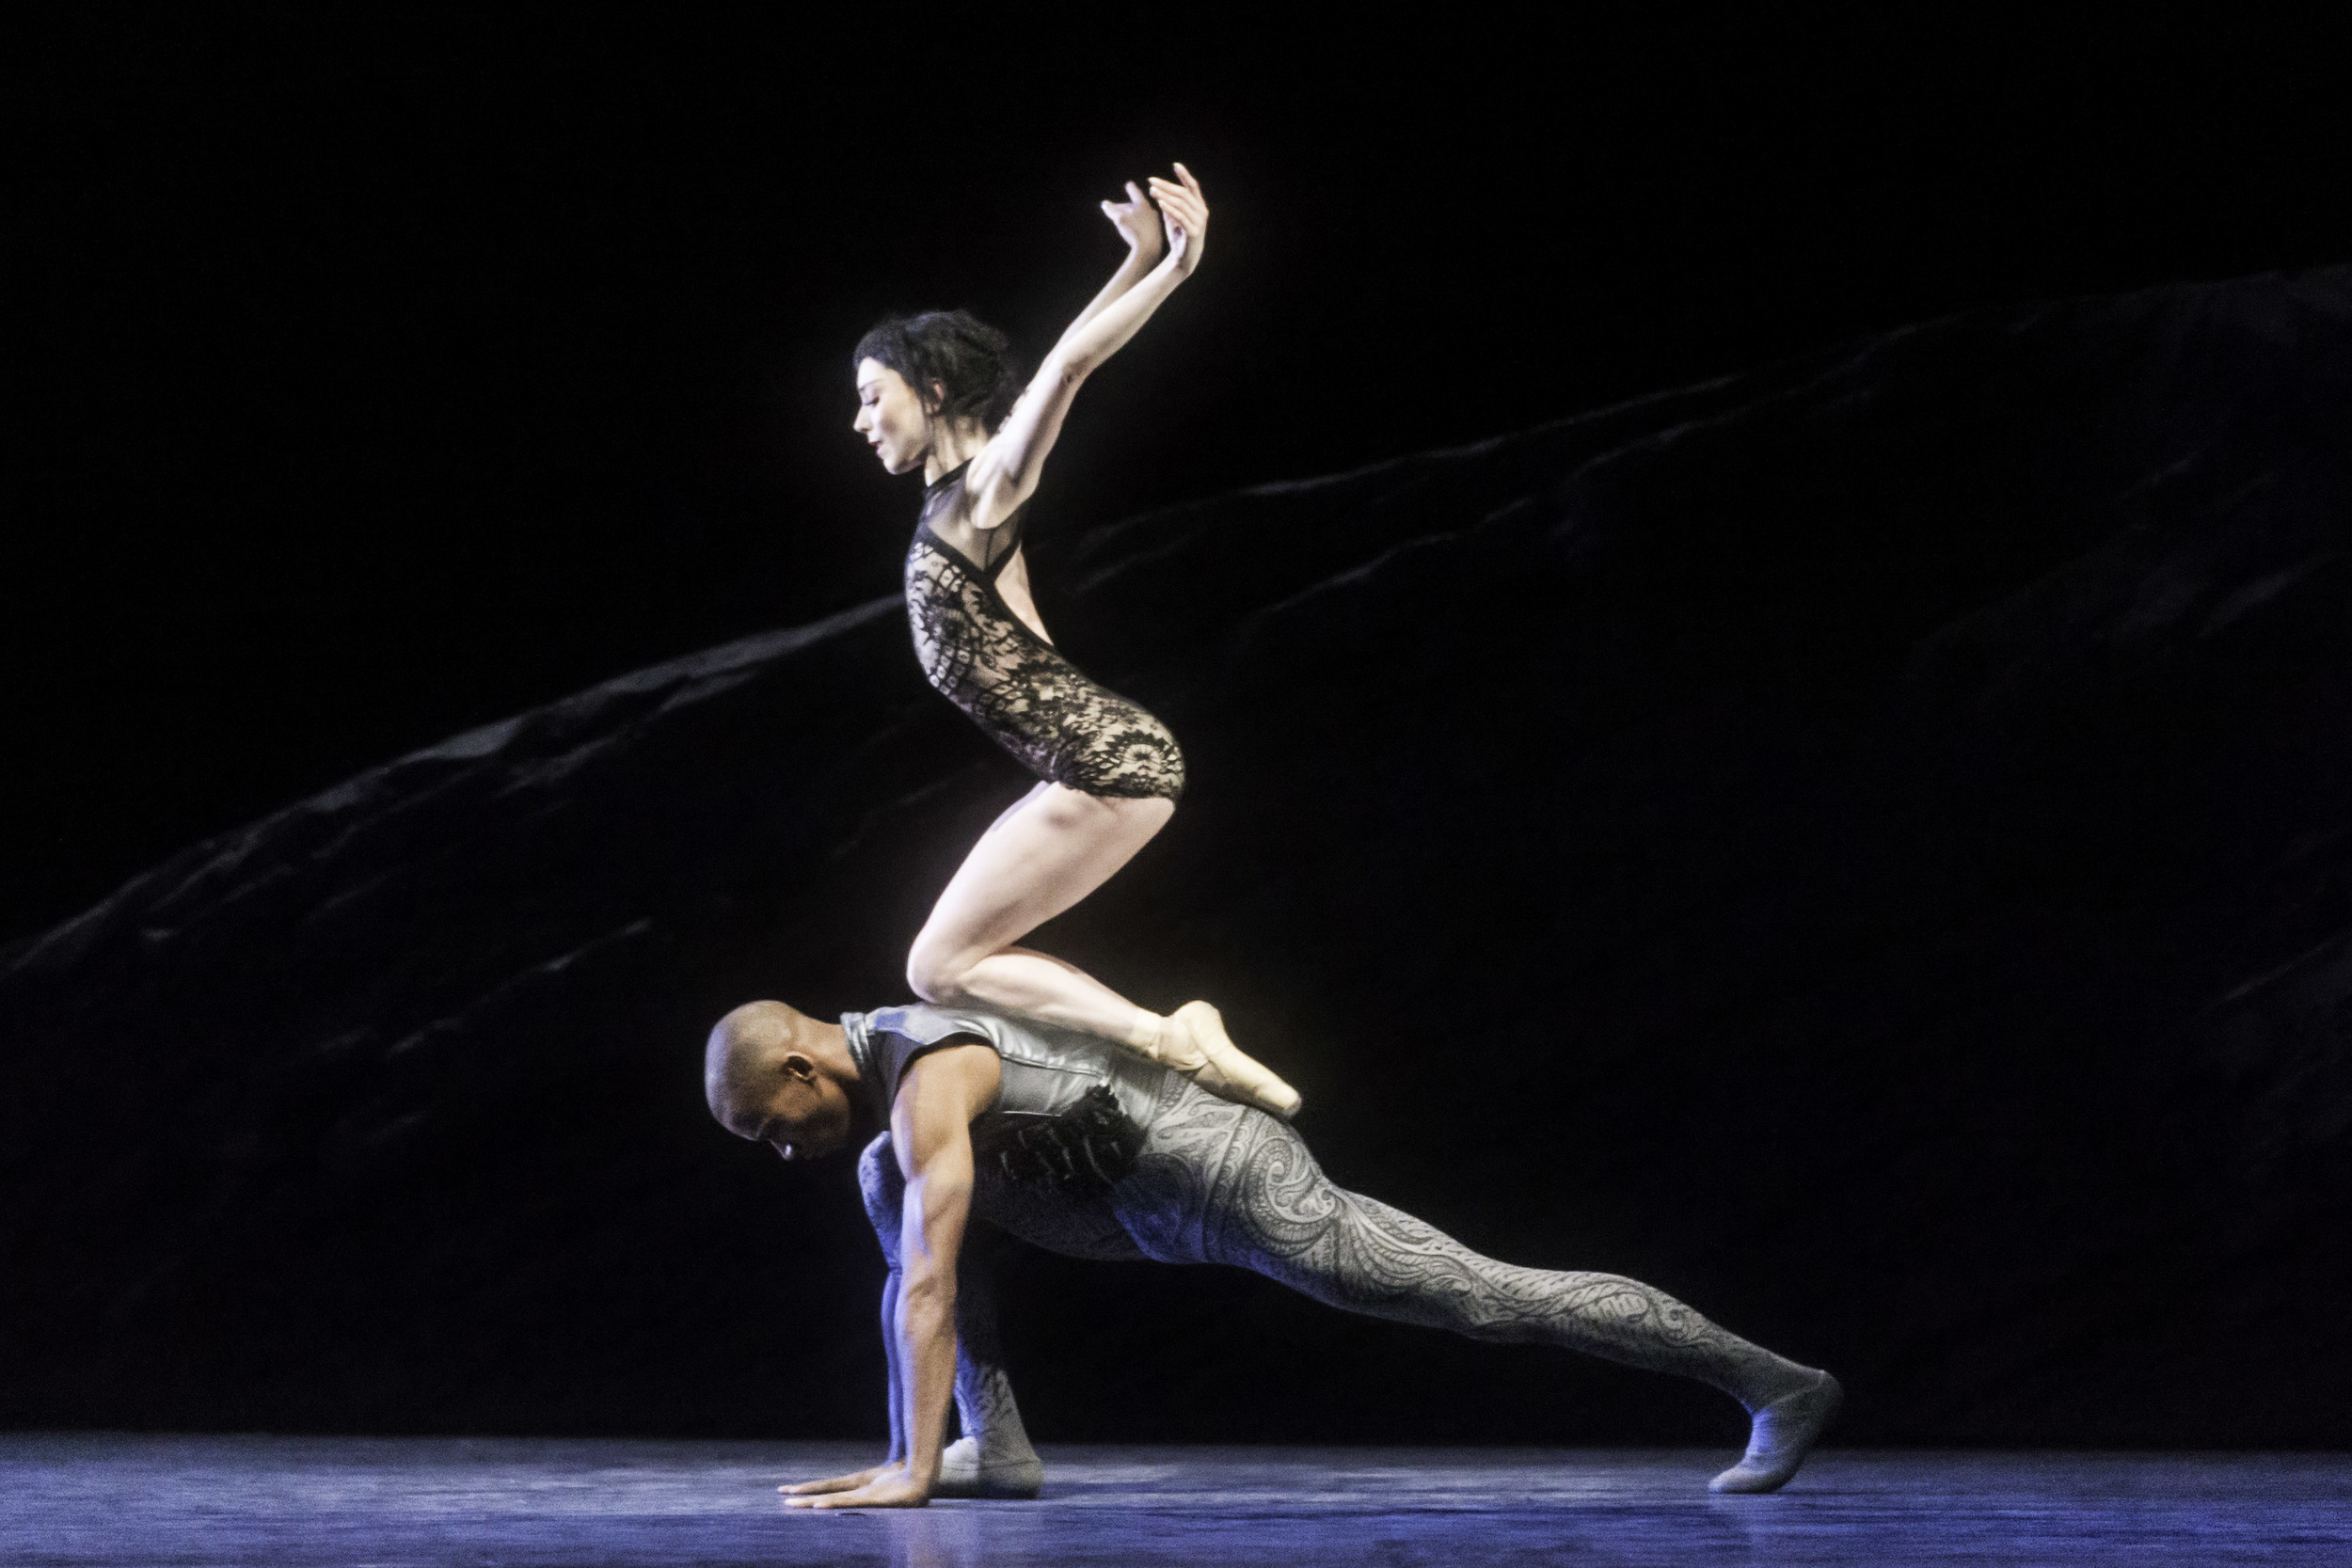 Sarah Lamb and Eric Underwood of the Royal Ballet Company demonstrate power and balance in  Raven Girl.Image supplied by the Royal Ballet Company, photo by Johan Persson.